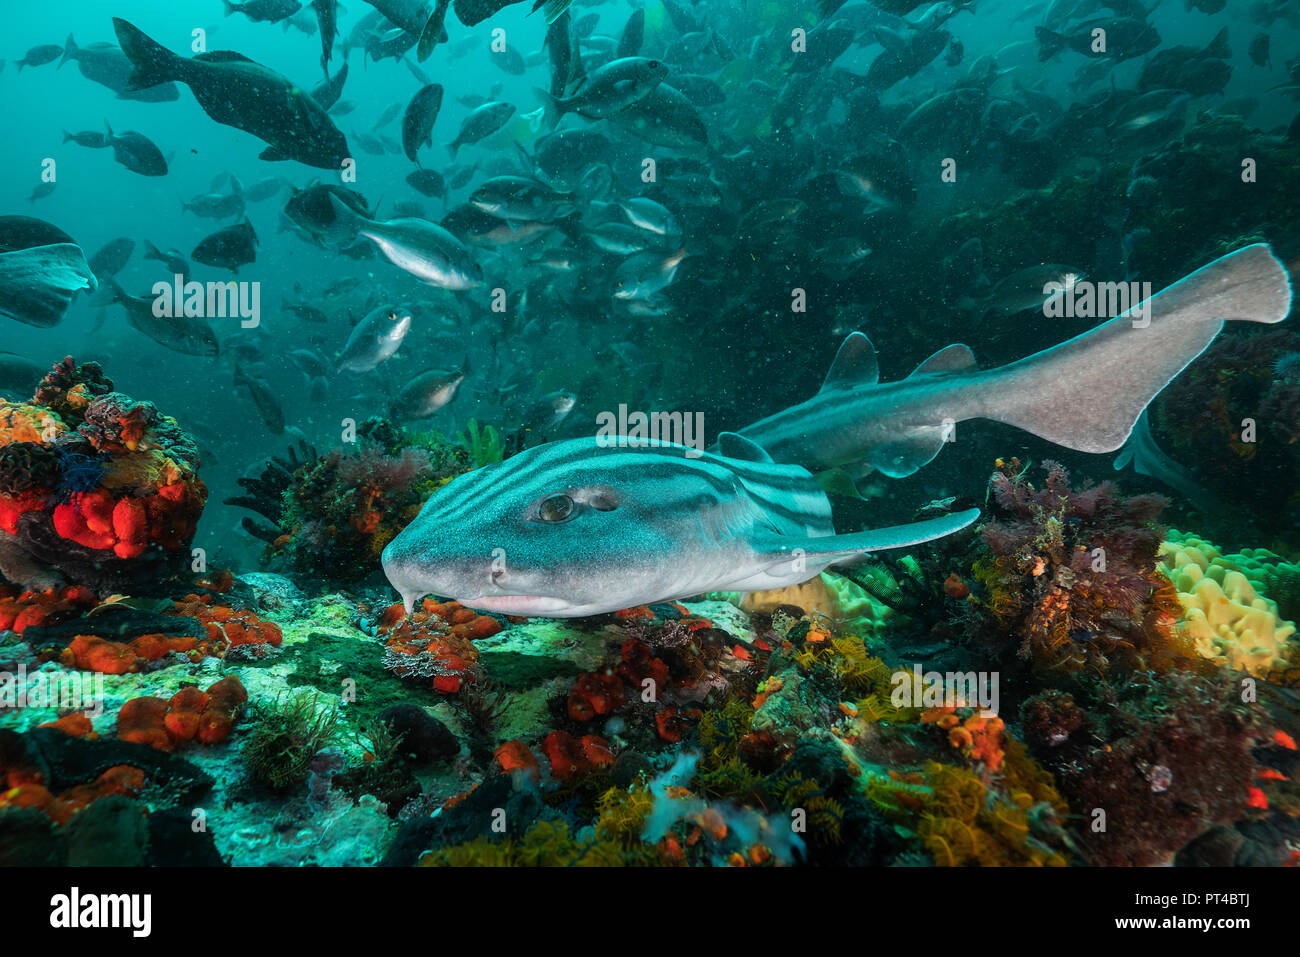 Striped pyjama cat shark swimming over the coral reef, False Bay, Cape Town. - Stock Image